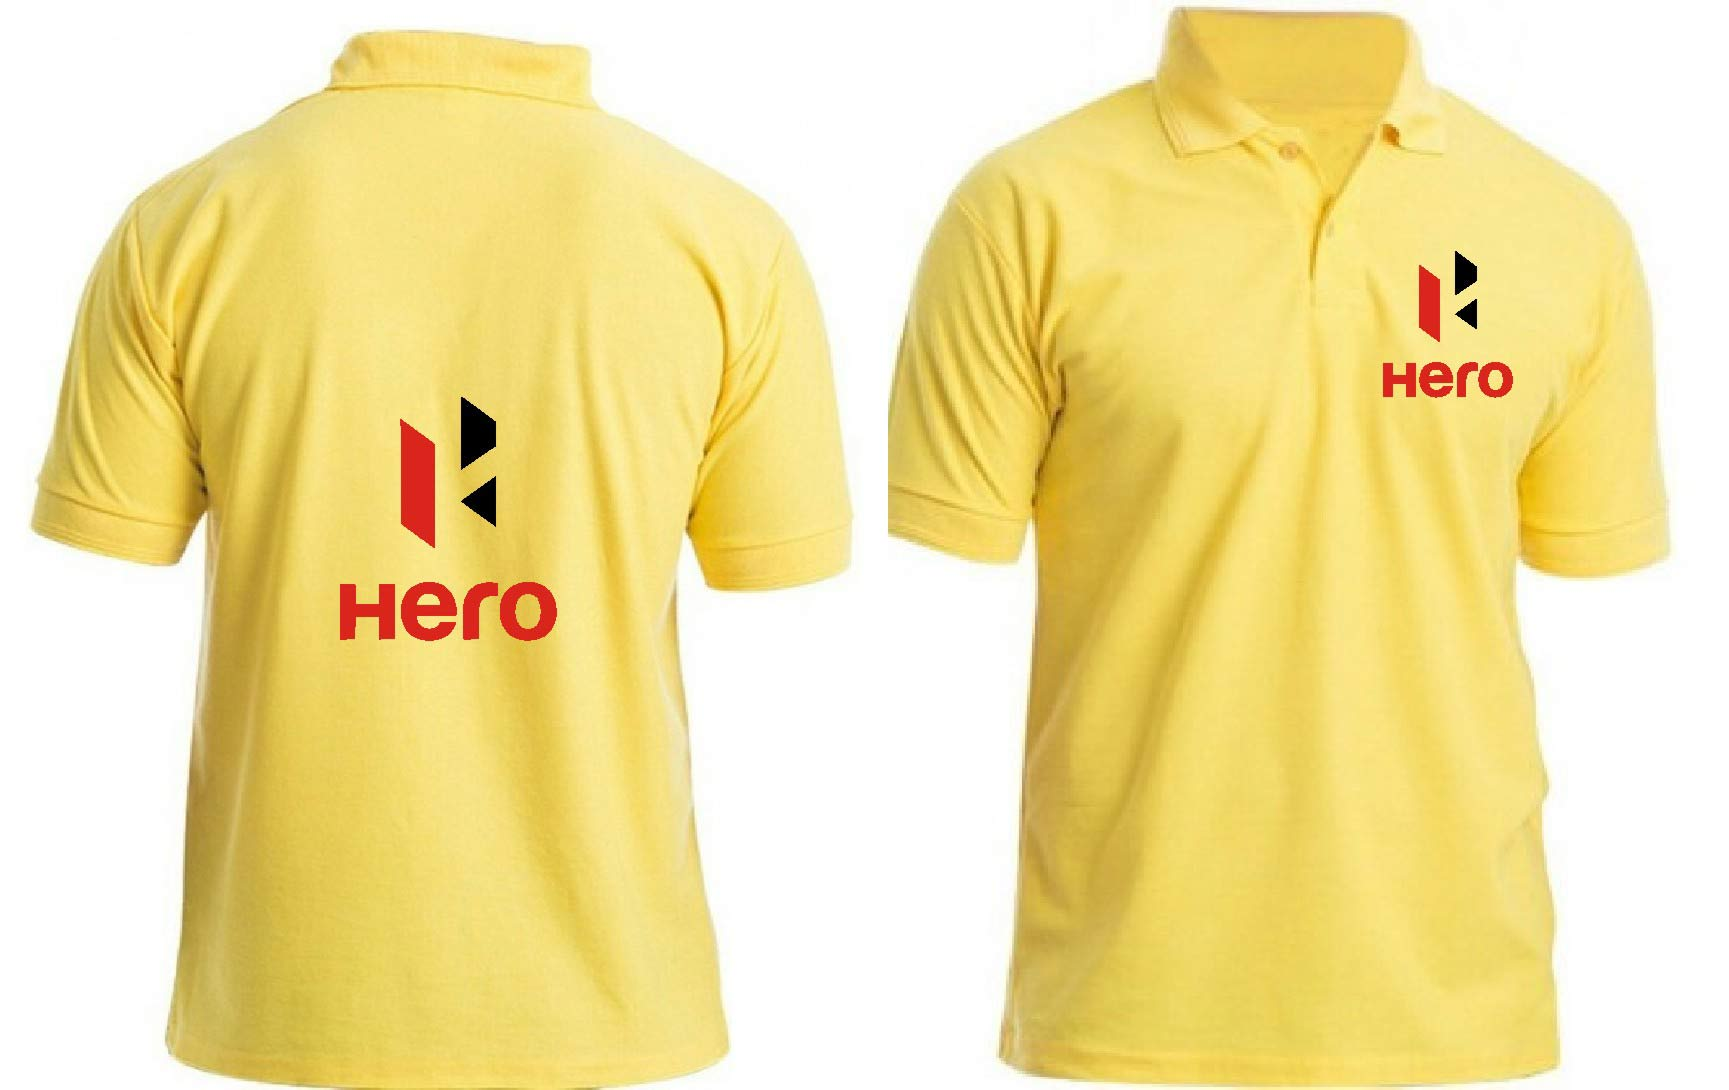 Promotional T Shirts Printing T12 T12 Rs139 Diary New Year